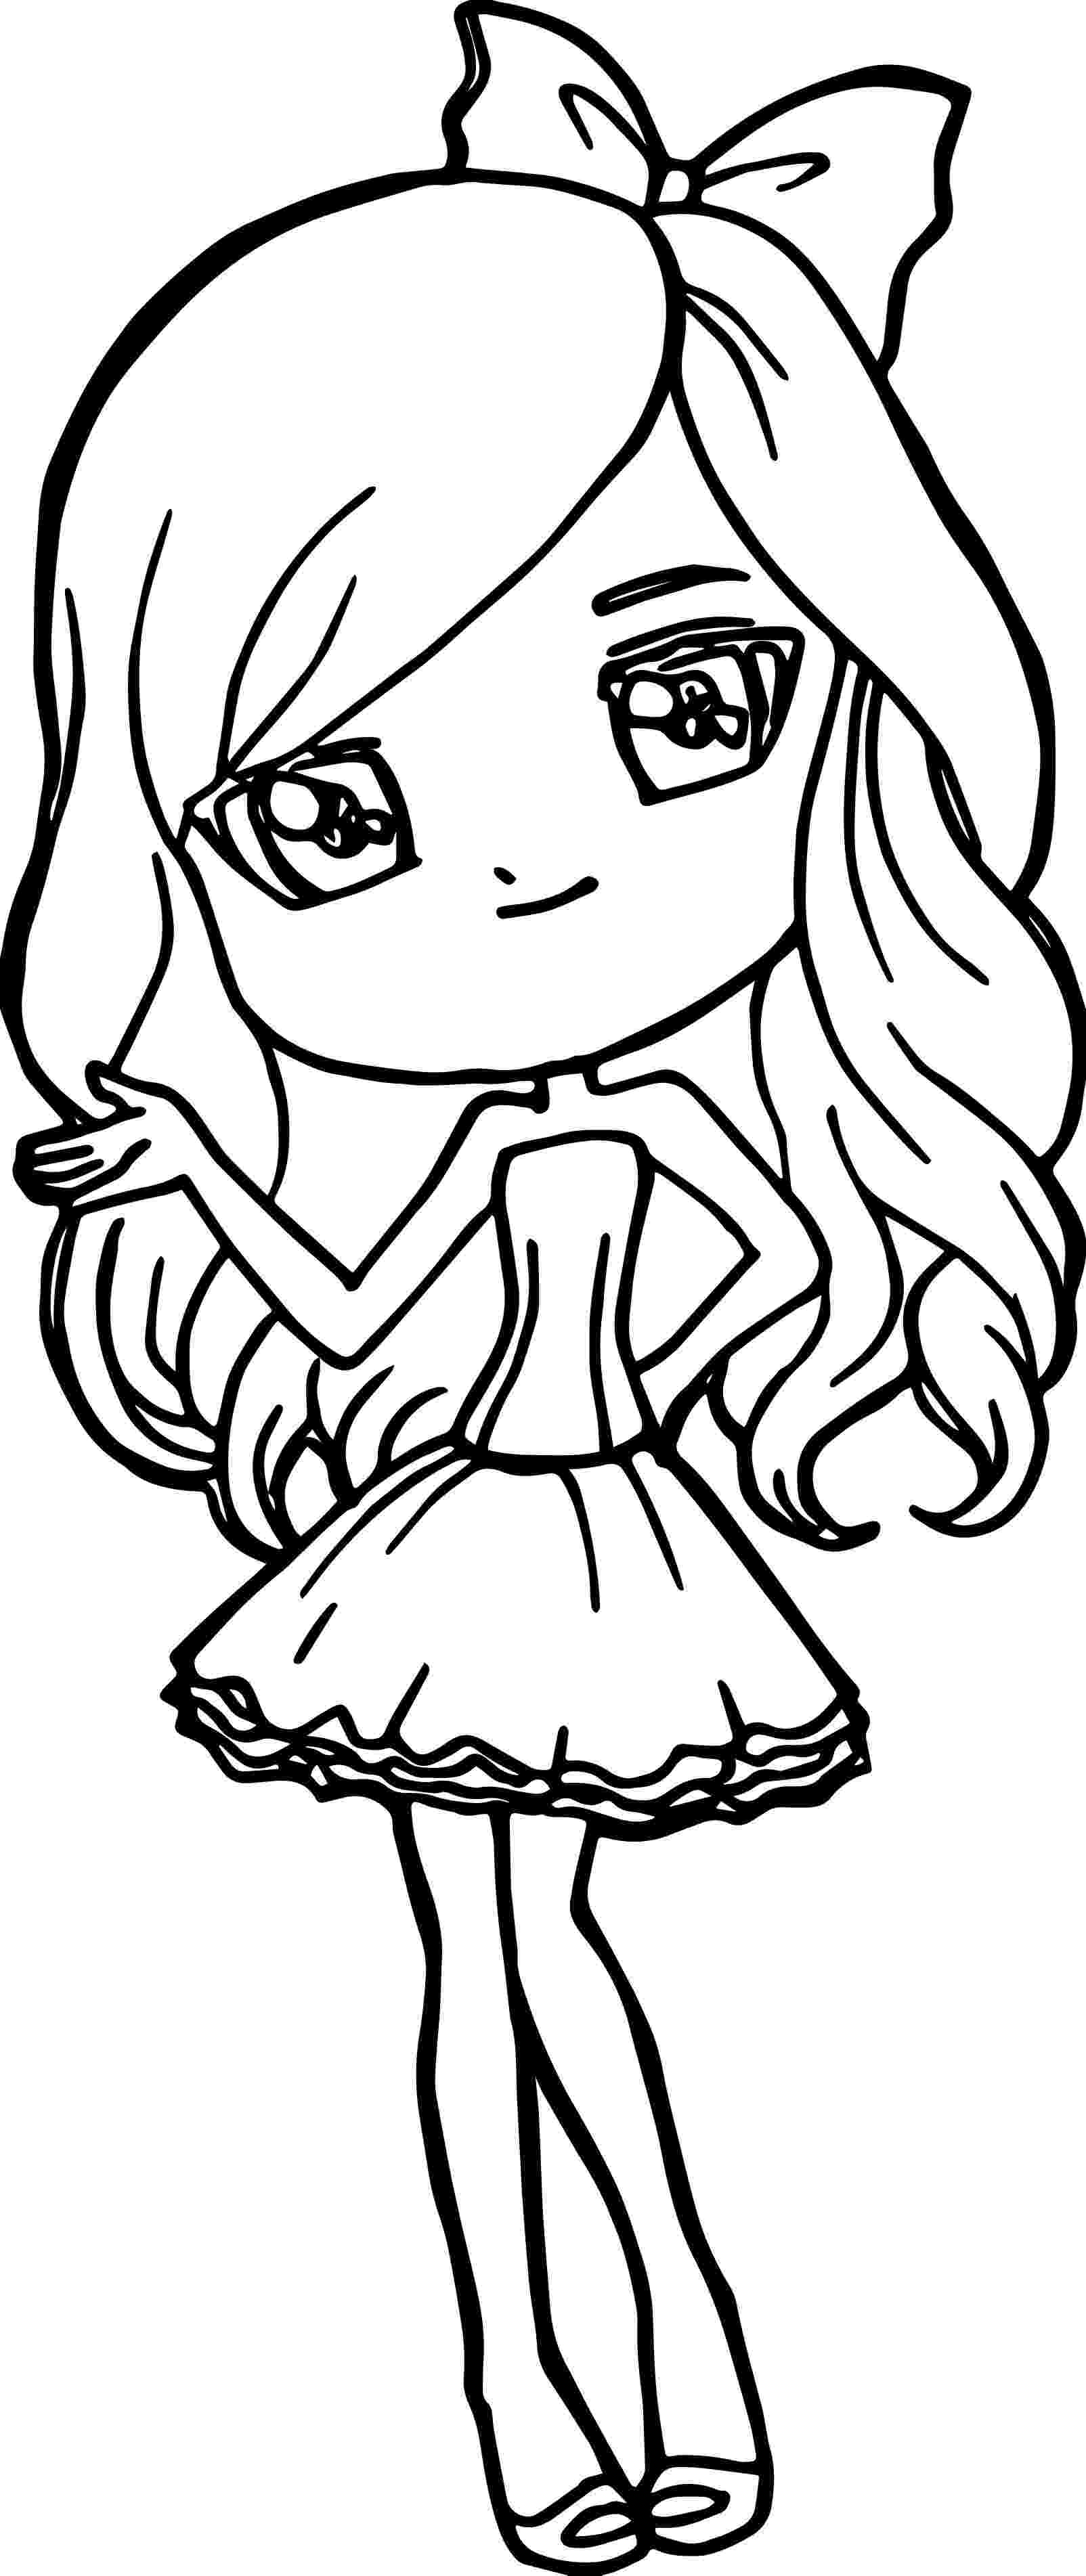 barbie girl colouring pictures free printable barbie coloring pages for kids pictures barbie colouring girl